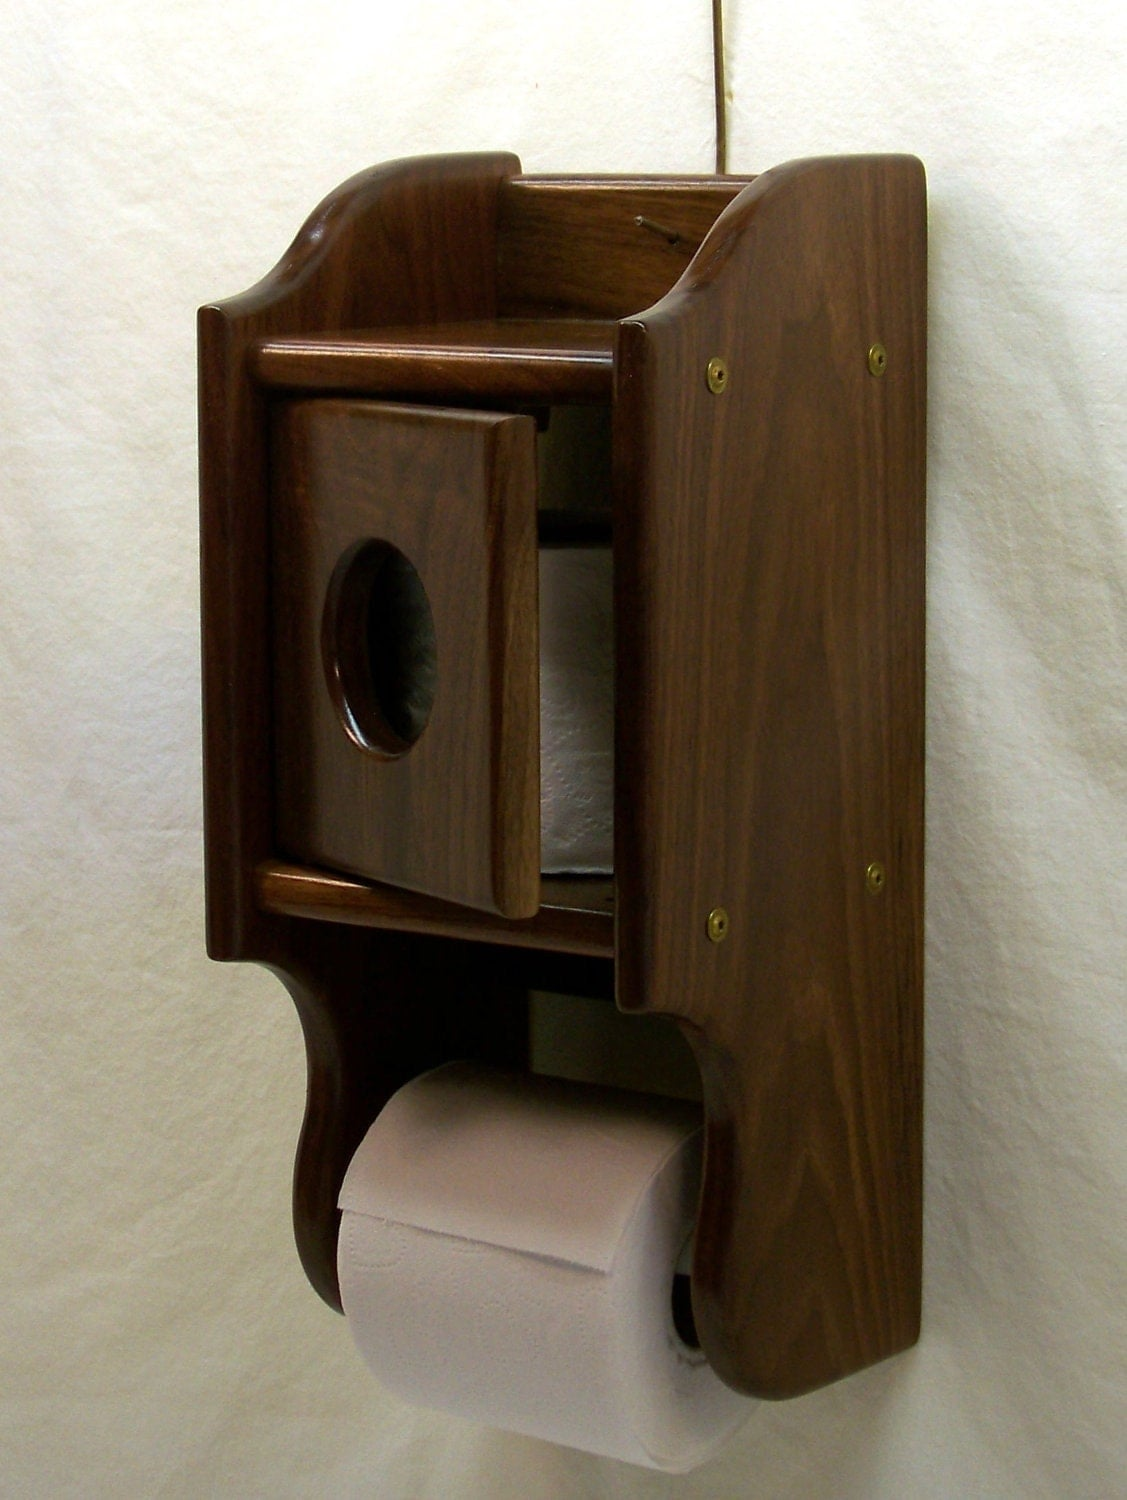 Items Similar To Wooden Toilet Paper Holder With Tissue